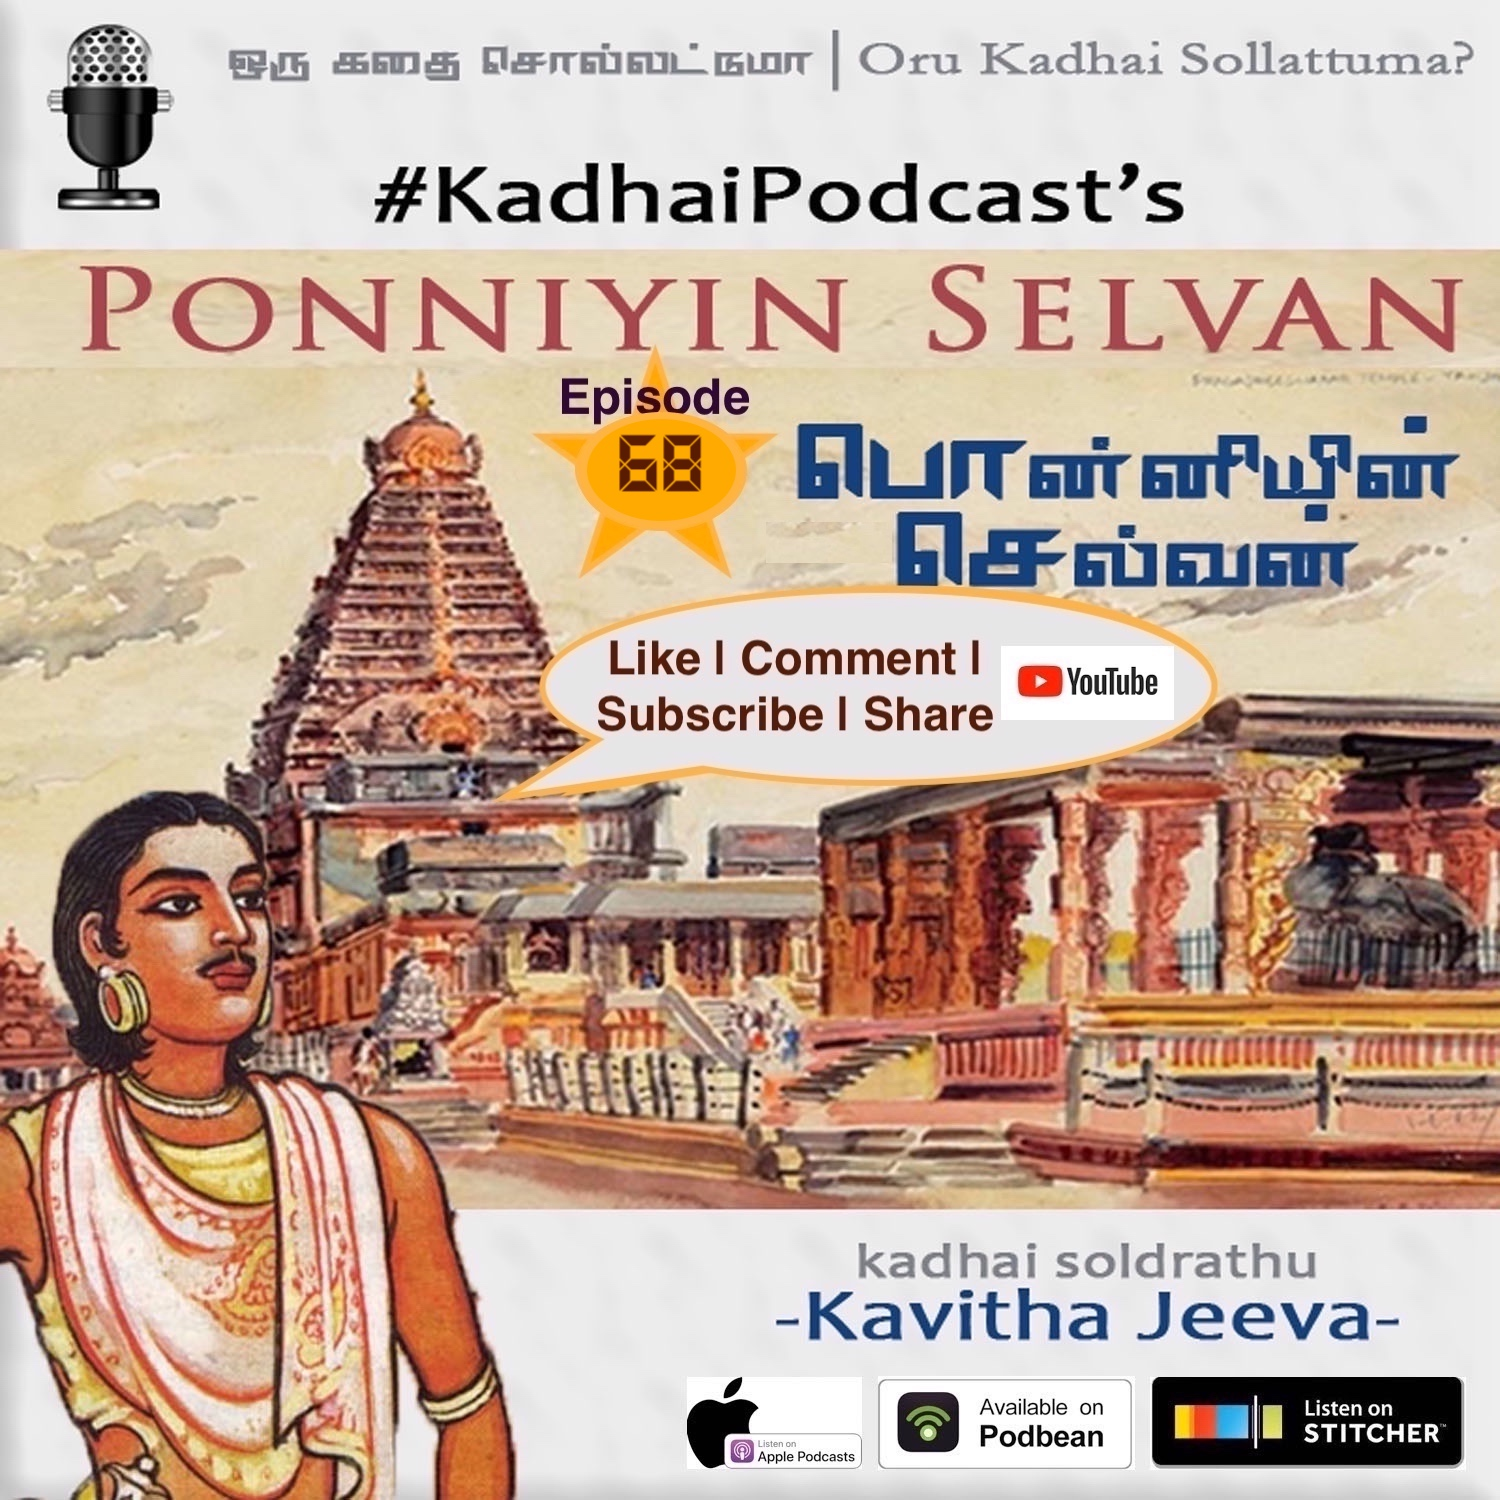 Related – KadhaiPodcast's PonniyinSelvan – Podcast – Podtail